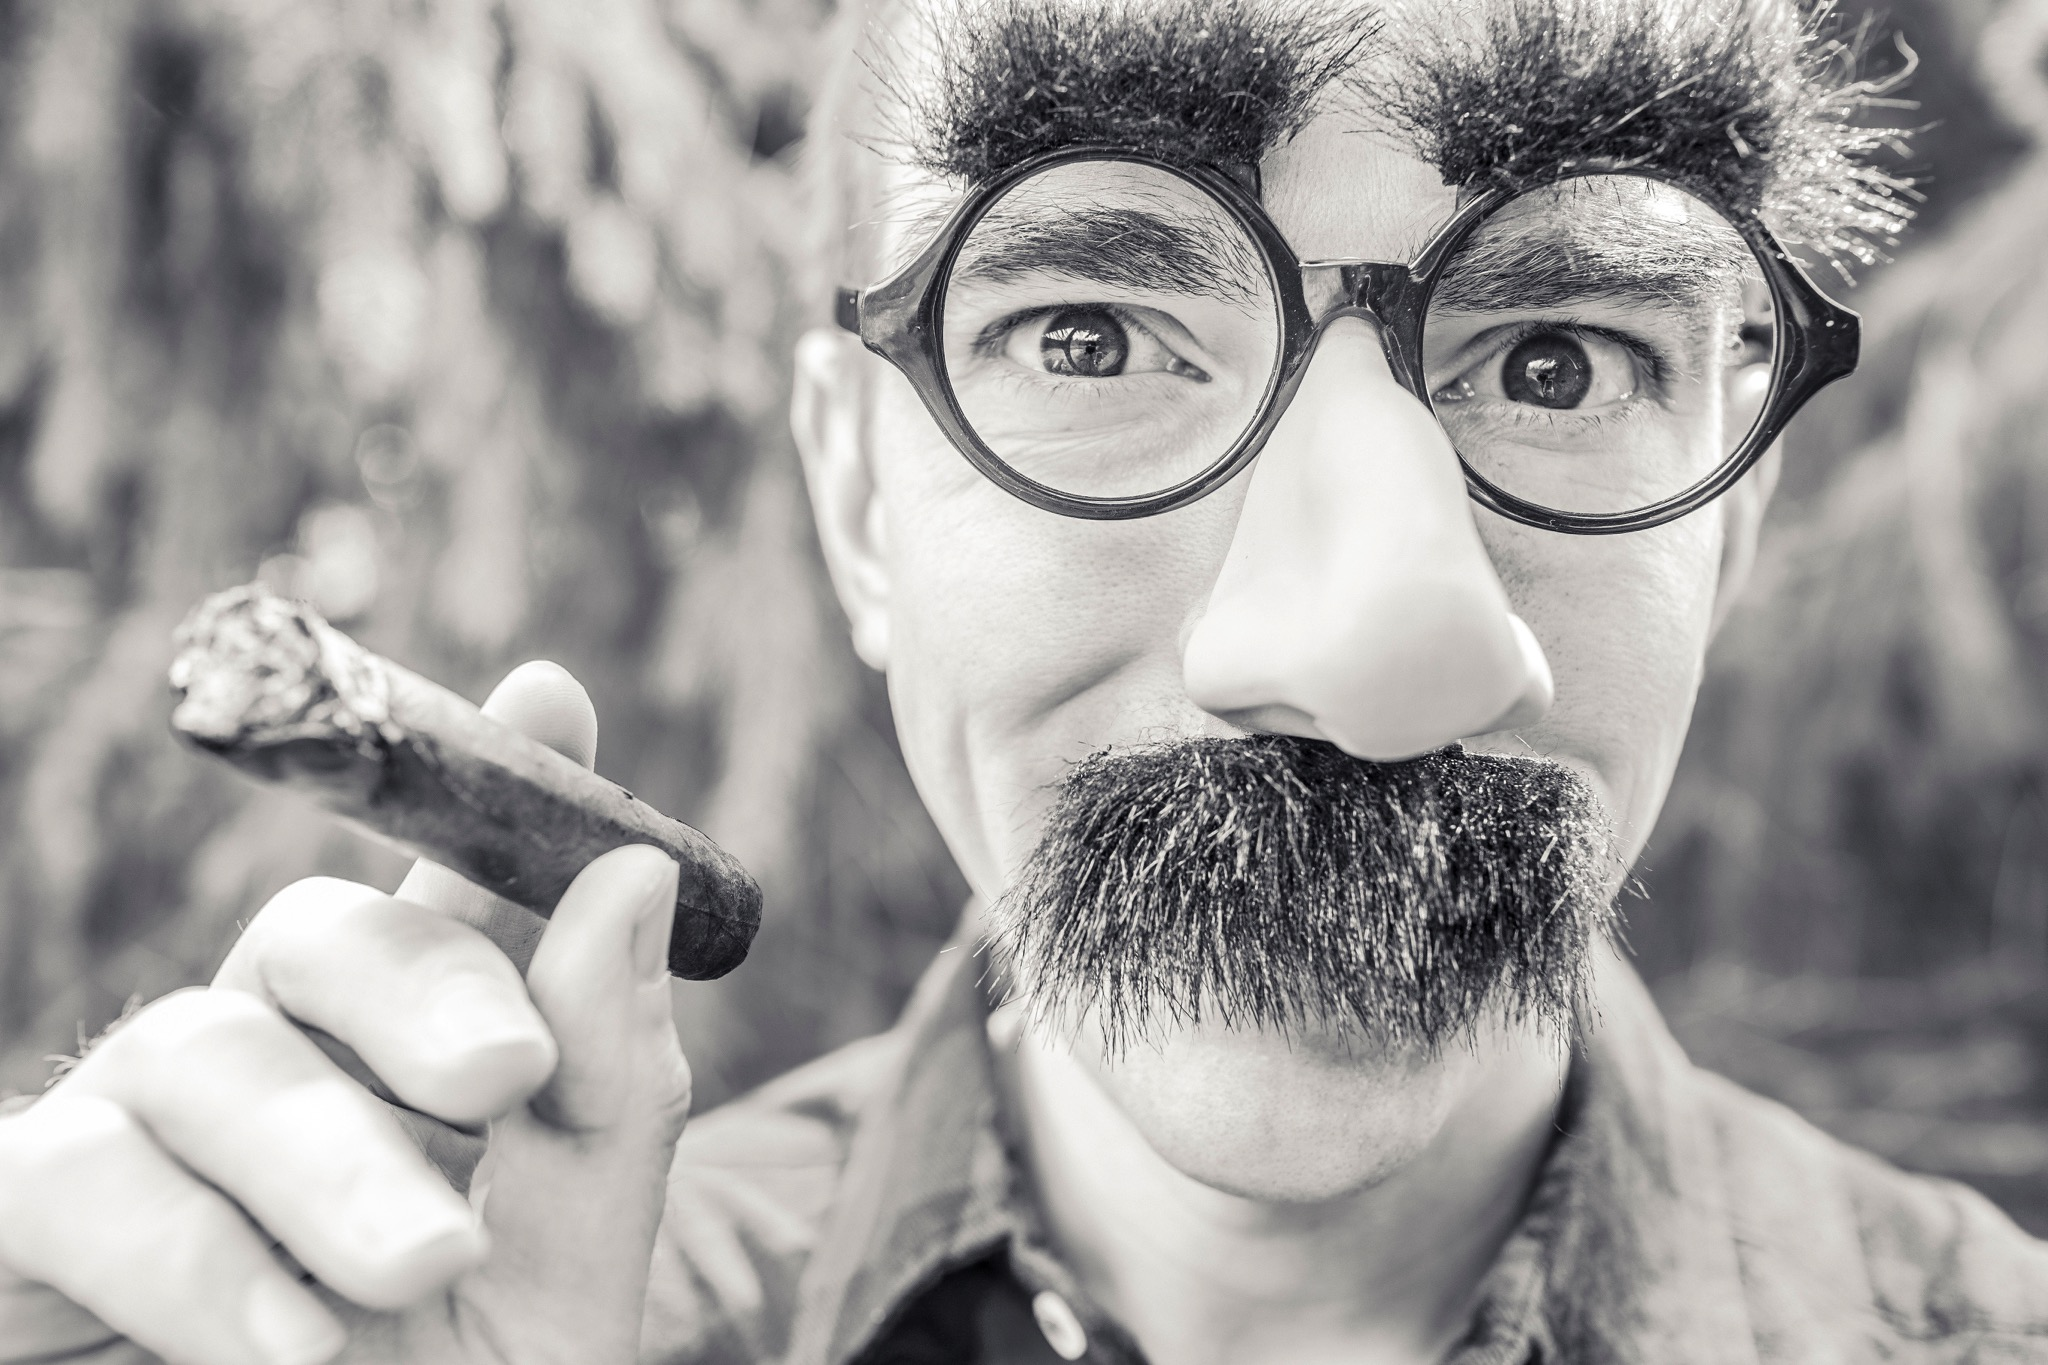 Man wearing fake glasses and moustache